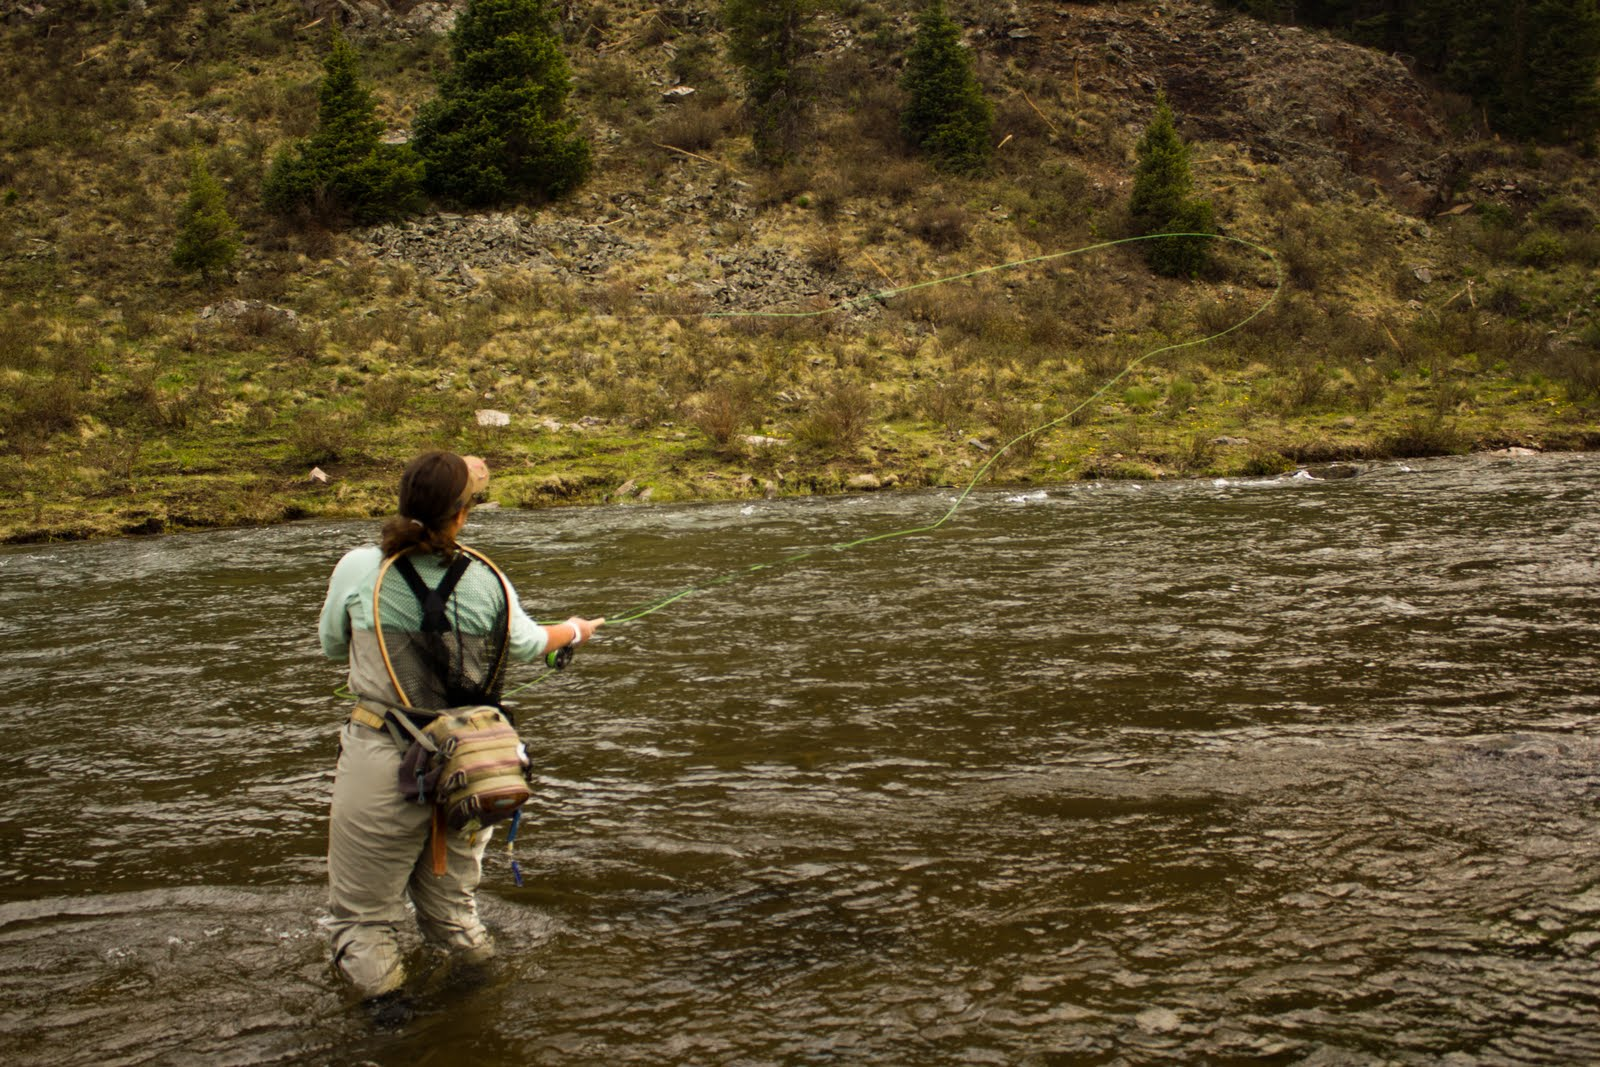 Conejos river anglers current news nymphing the conejos river for Fly fishing split shot